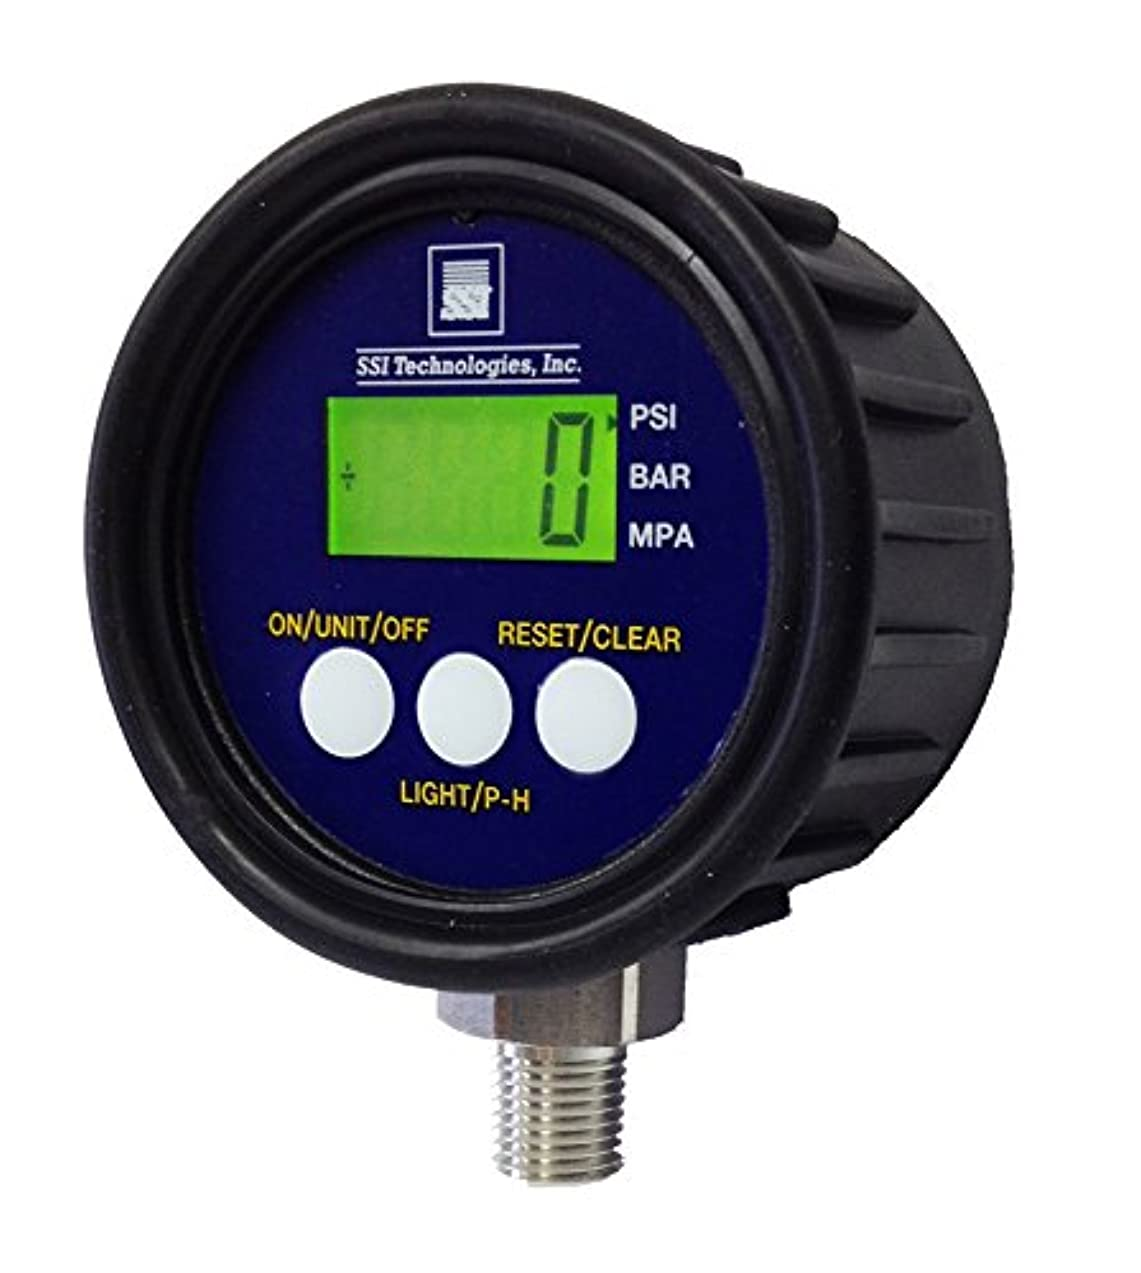 SSI TECHNOLOGIES MG1-9V Series Media Gauge Digital Pressure Gauge Sensor with LCD Display, 3000psig Operating Pressure, 9V, 1% Accuracy, 1/4-18 NPT Male Process Connector Type